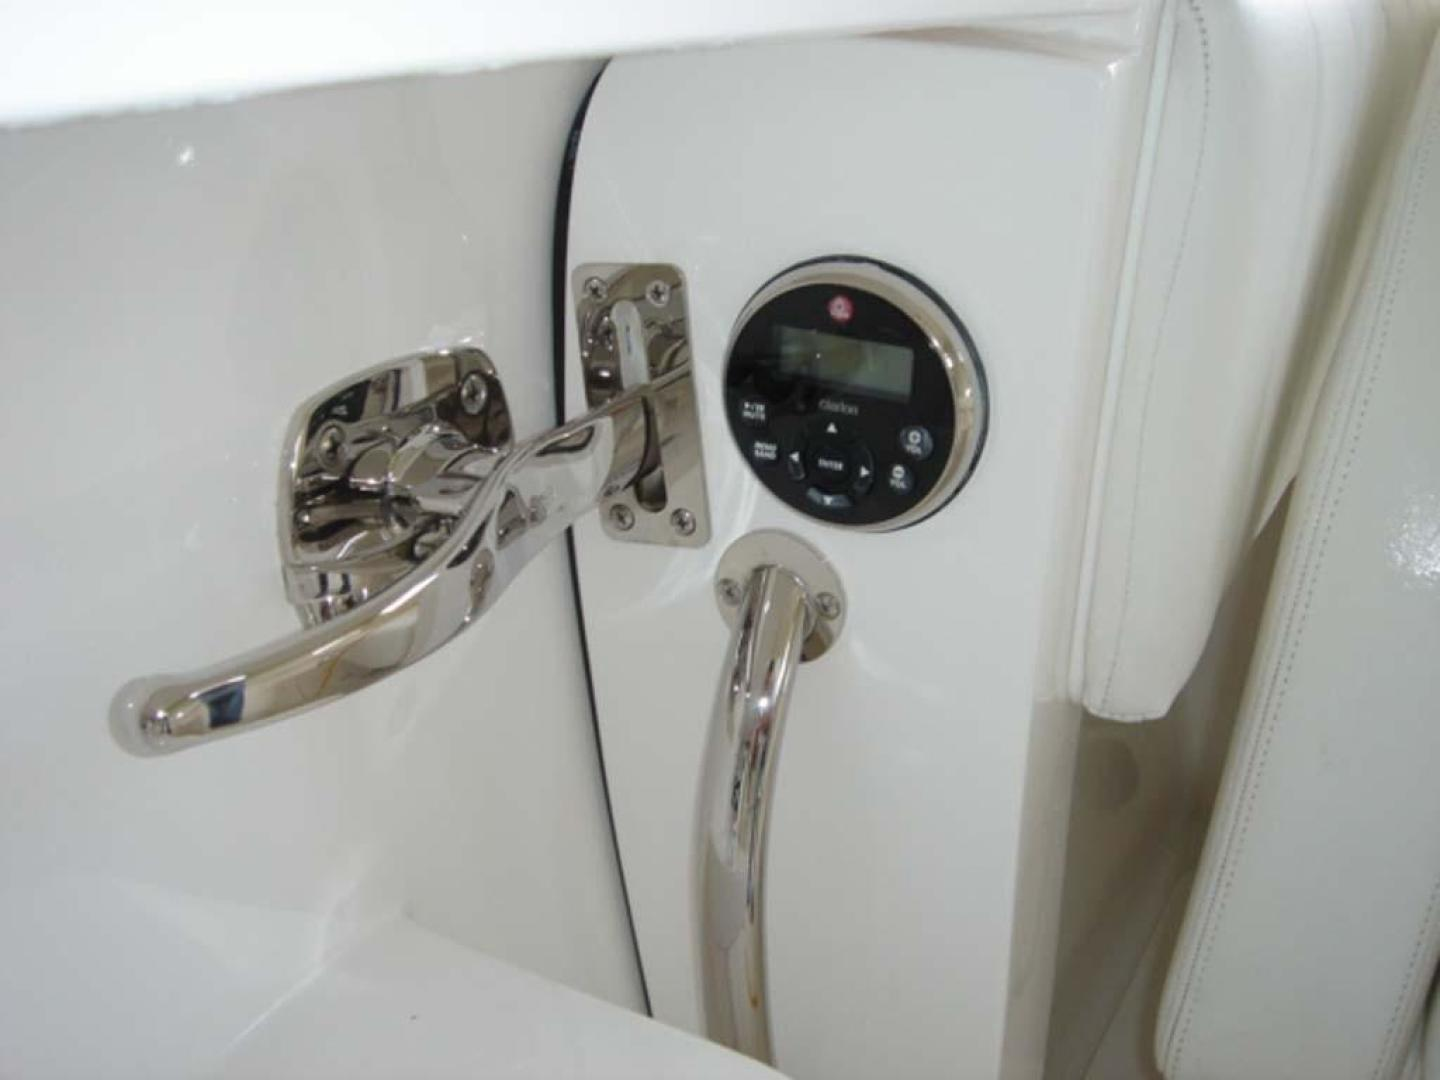 Intrepid-327 Center Console 2014-Deep Ship Palm Beach Gardens-Florida-United States-924034 | Thumbnail